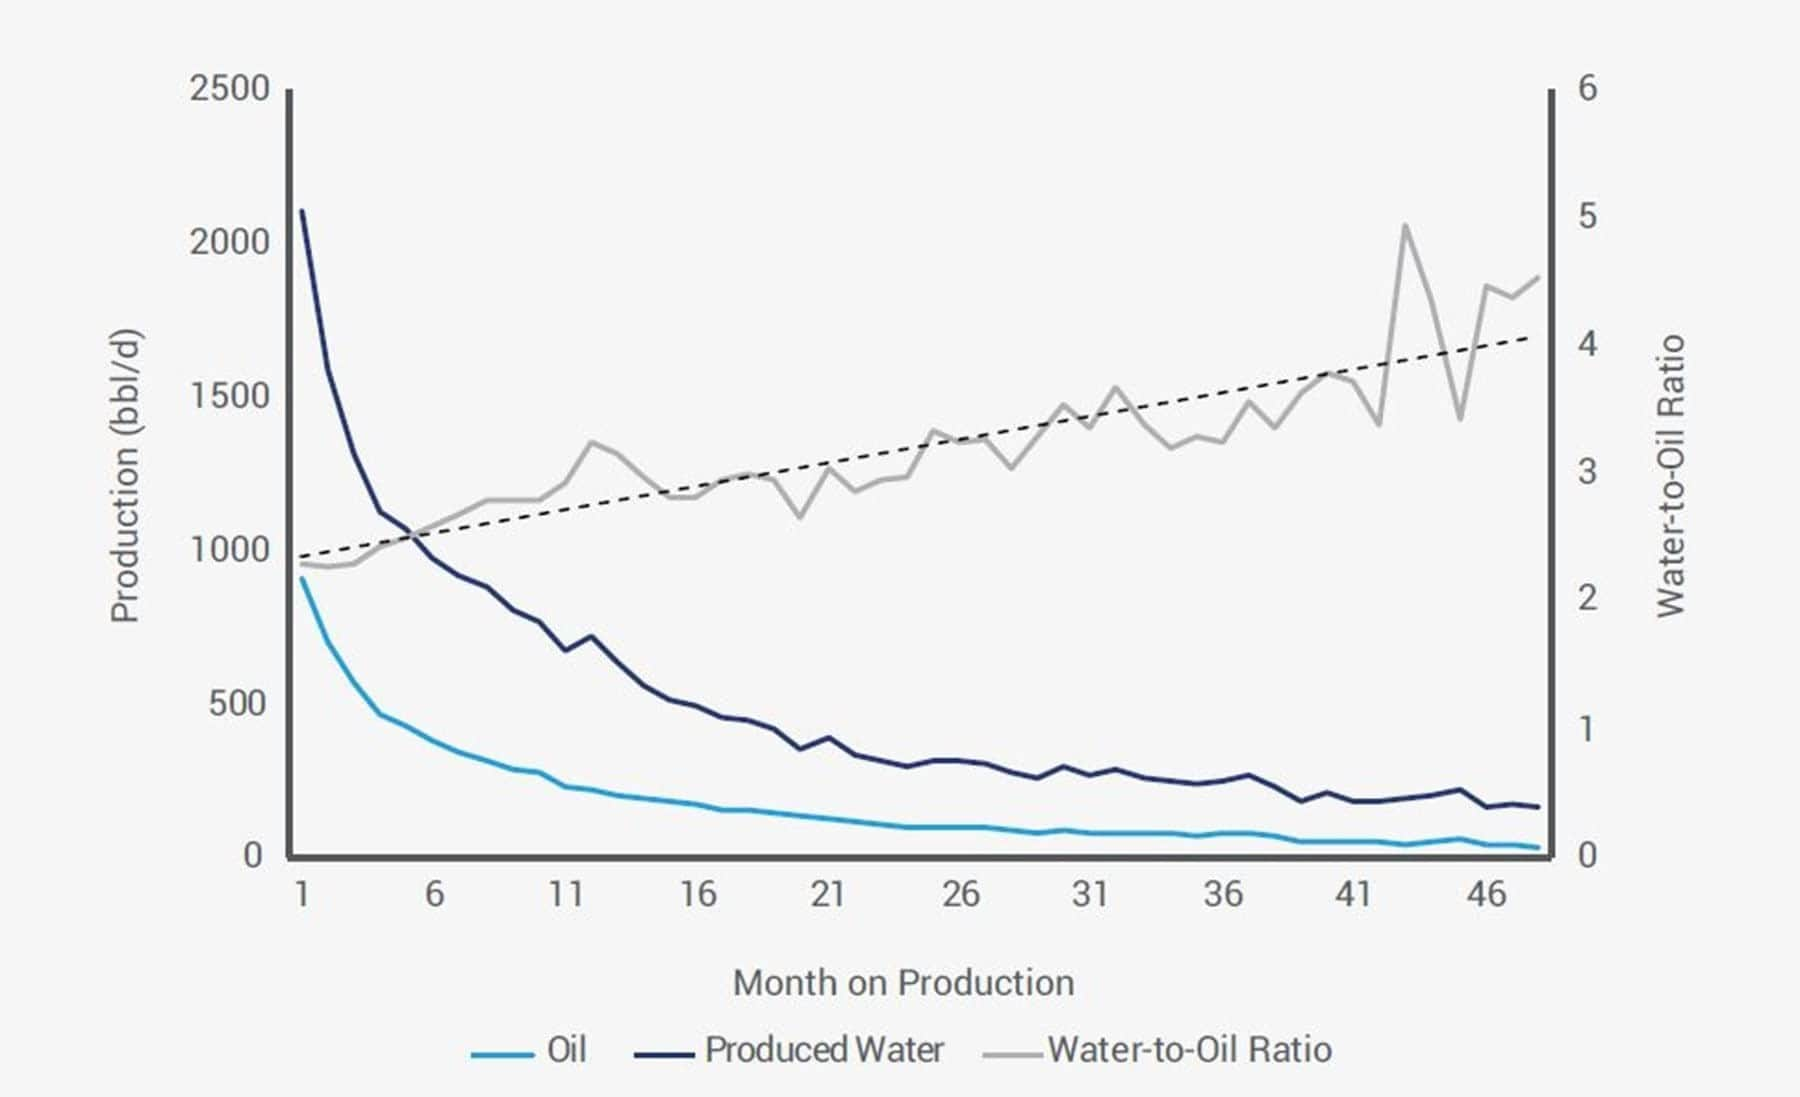 Oil and Water Production for Permian Basin